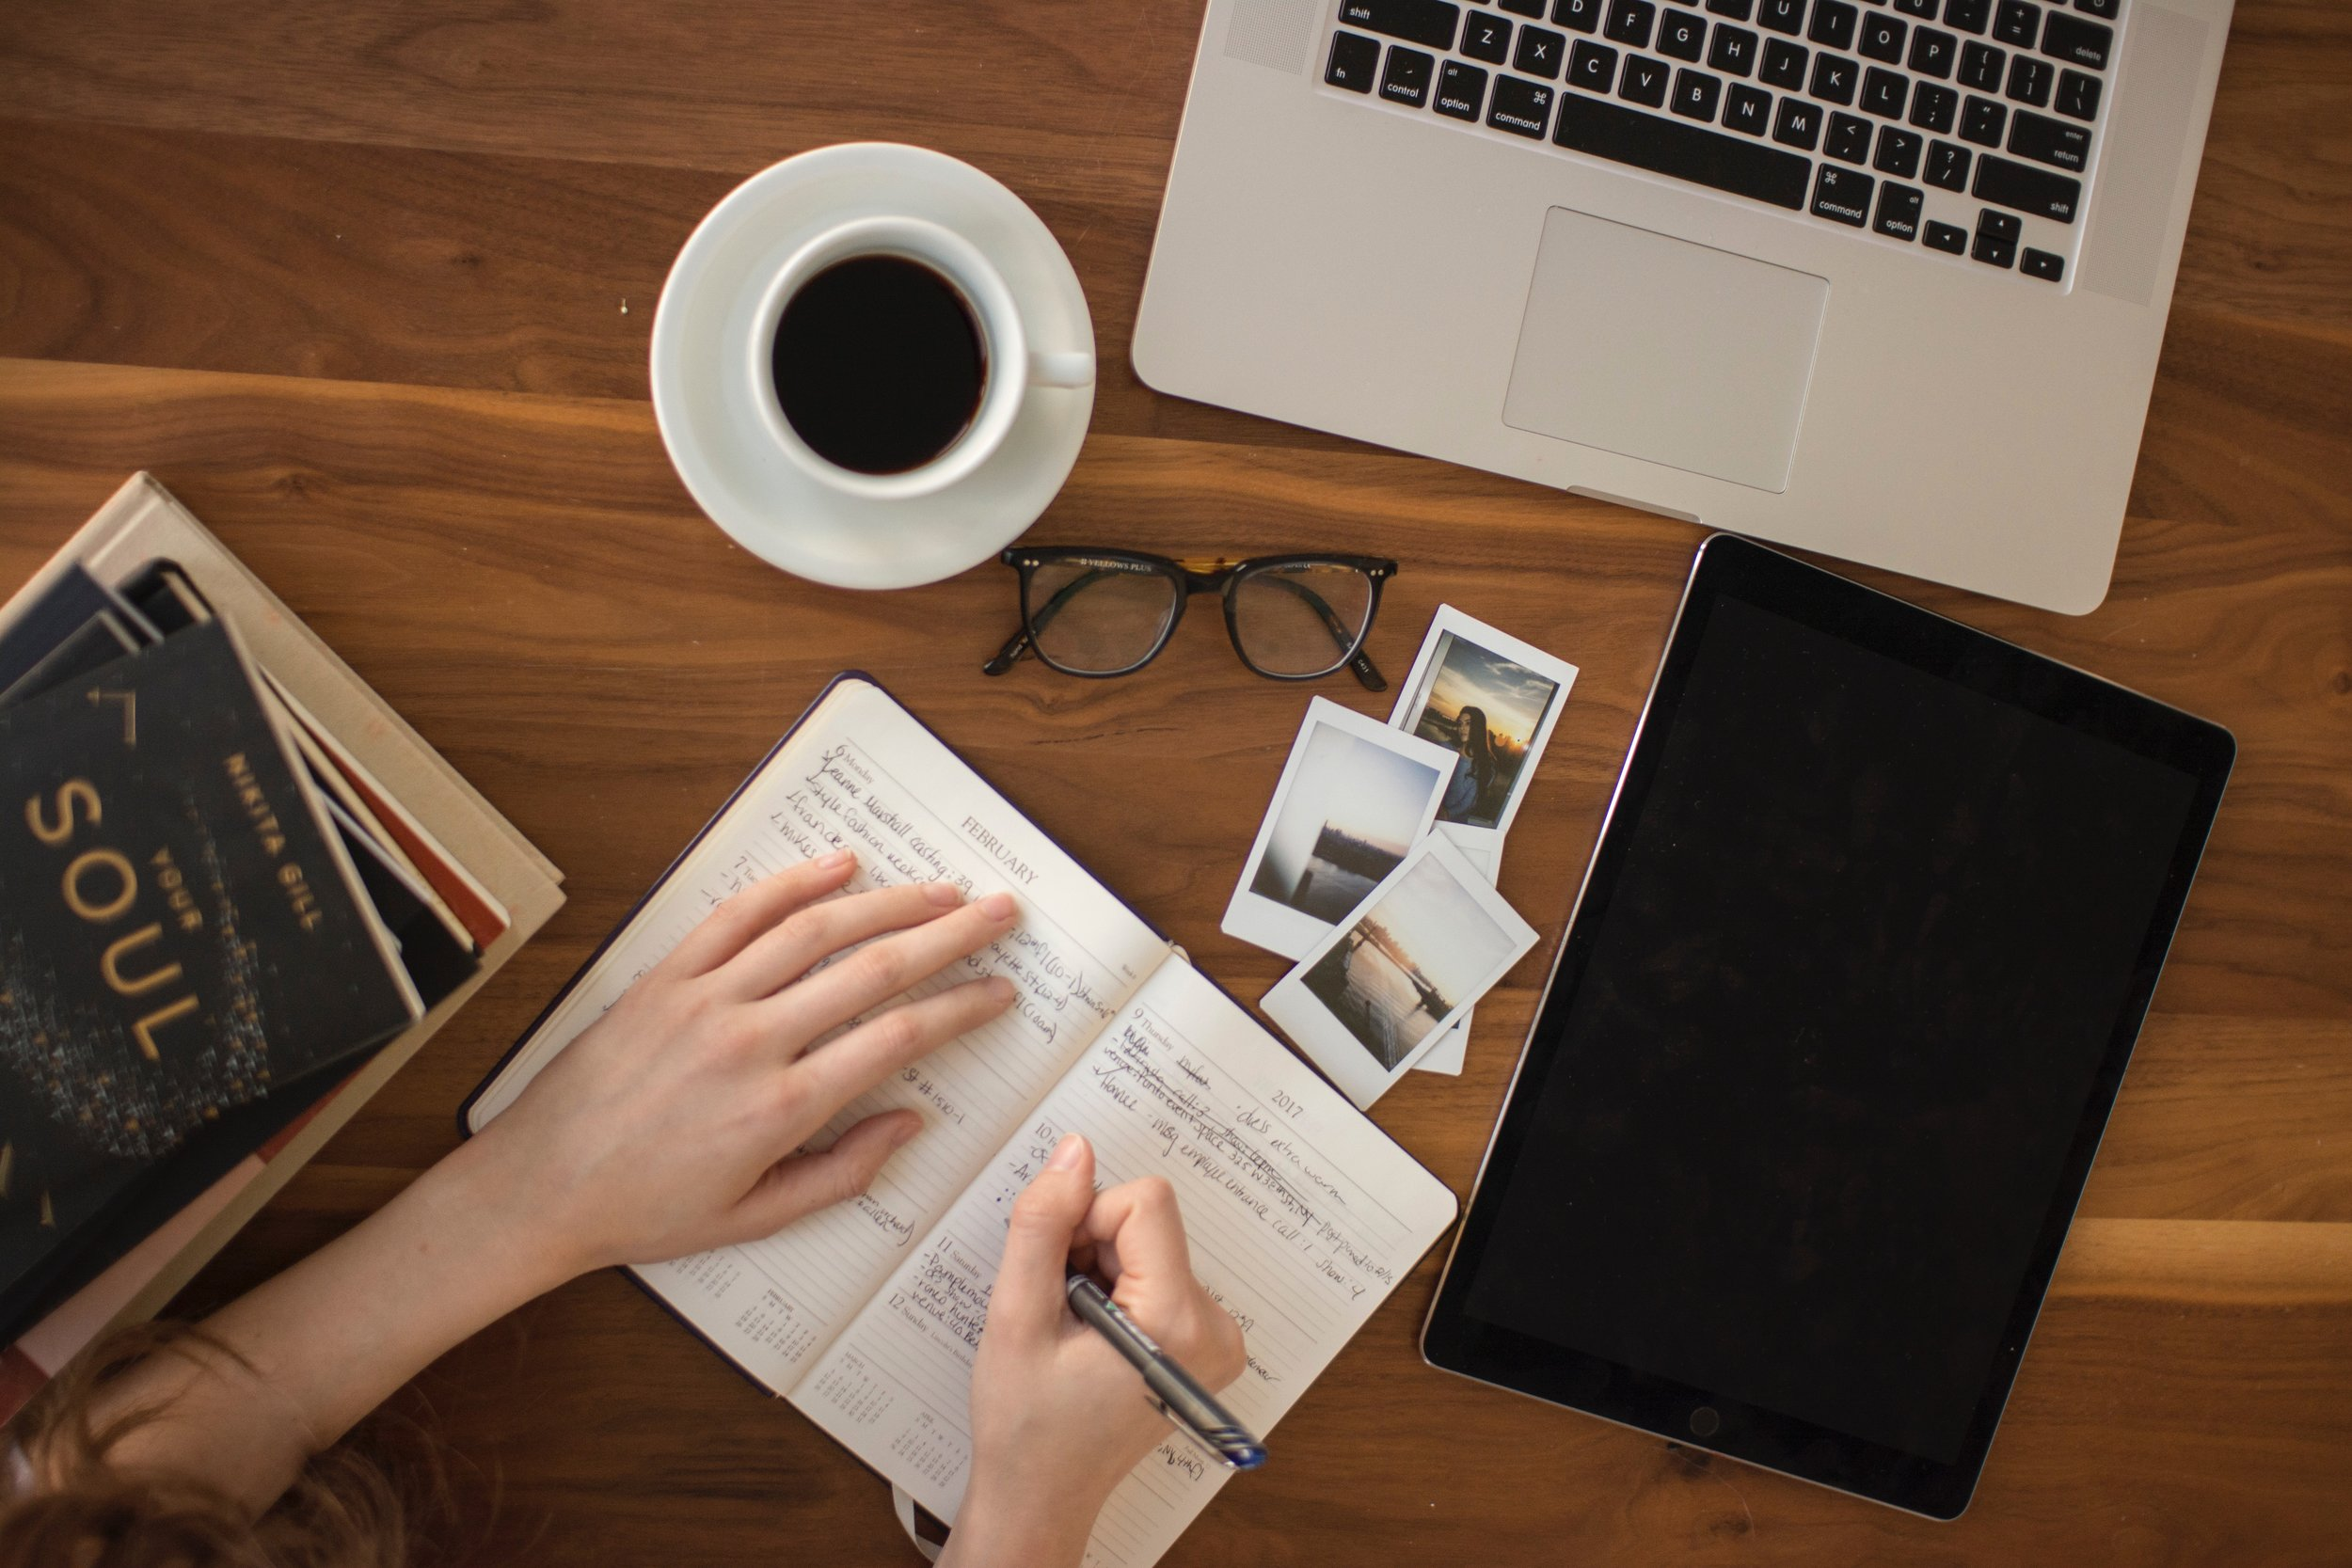 Our first instinct is usually to work on the computer, but studies have shown putting pen to paper increases productivity.